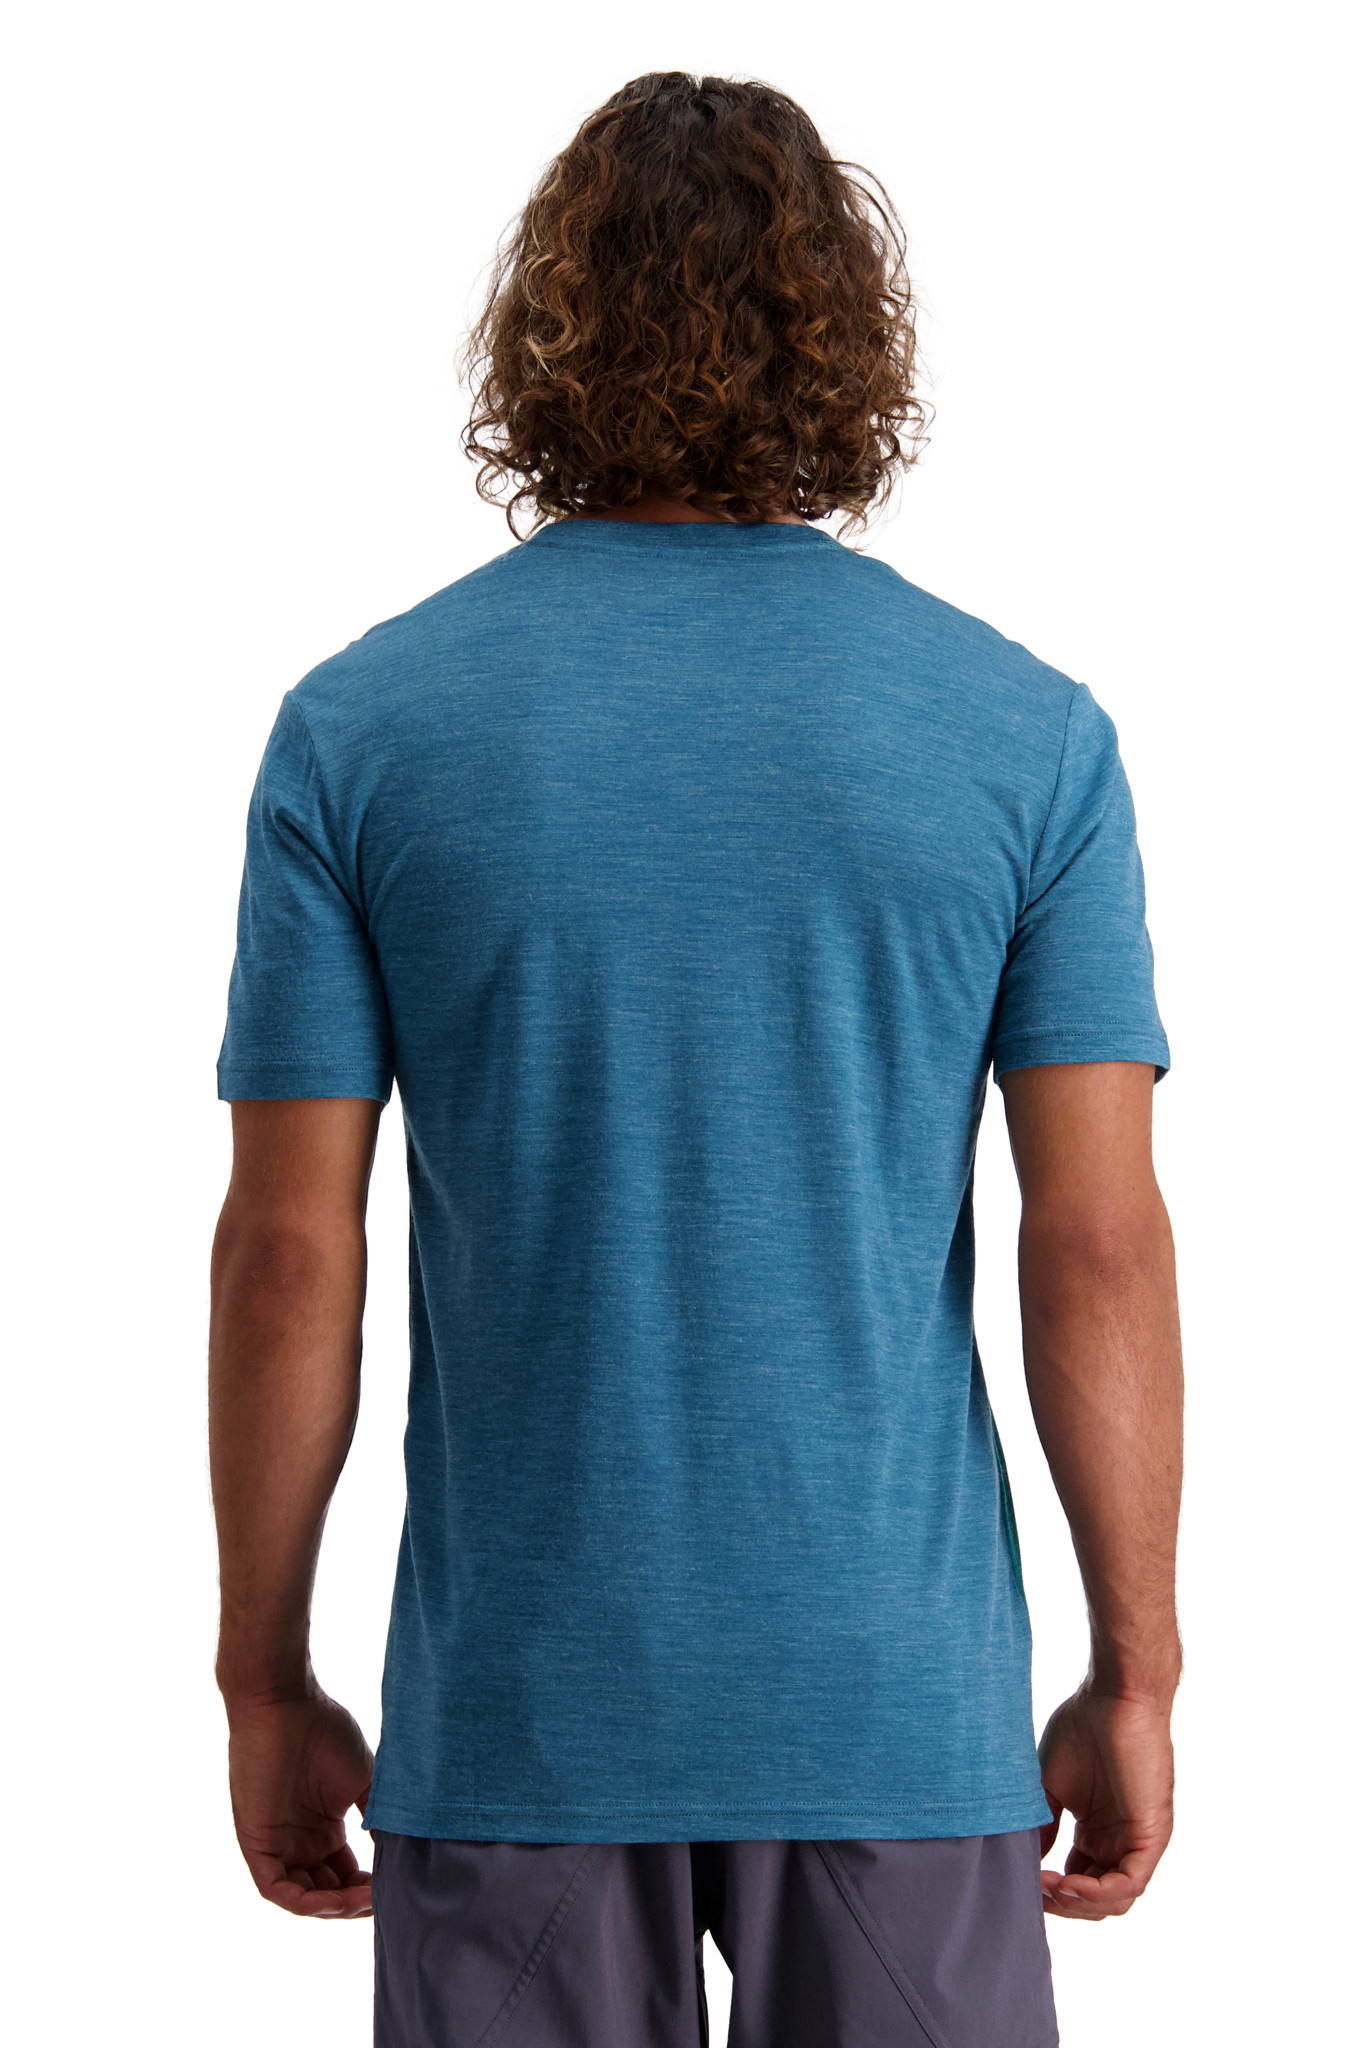 MONS ROYALE Mons Royale Men's Vapour Tee